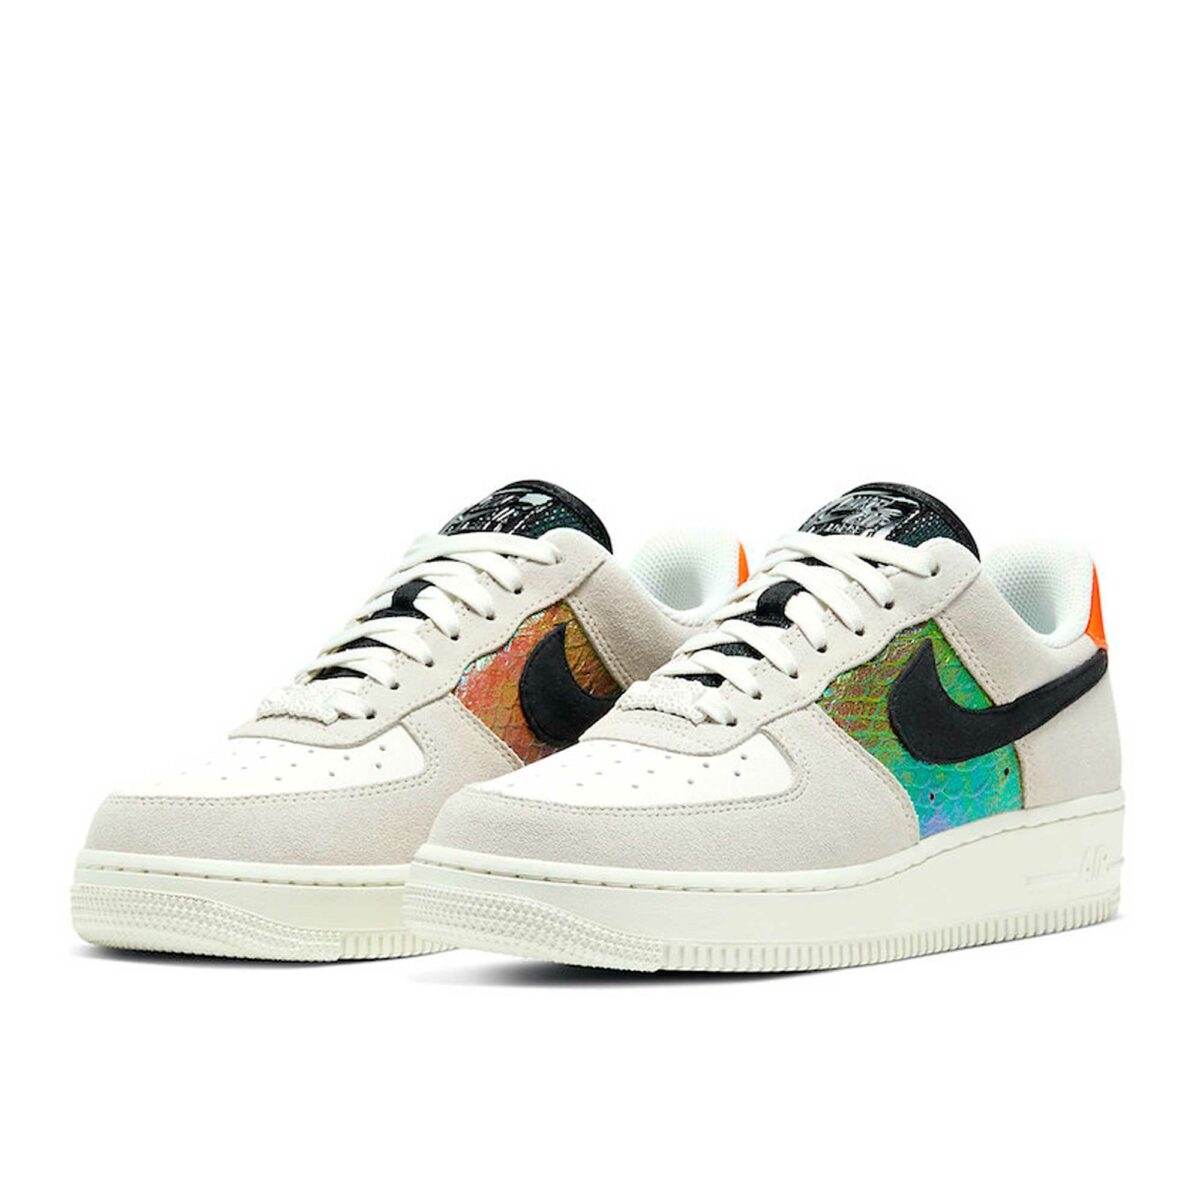 Nike Air Force 1 Low Iridescent Snakeskin CW2657_001 купить